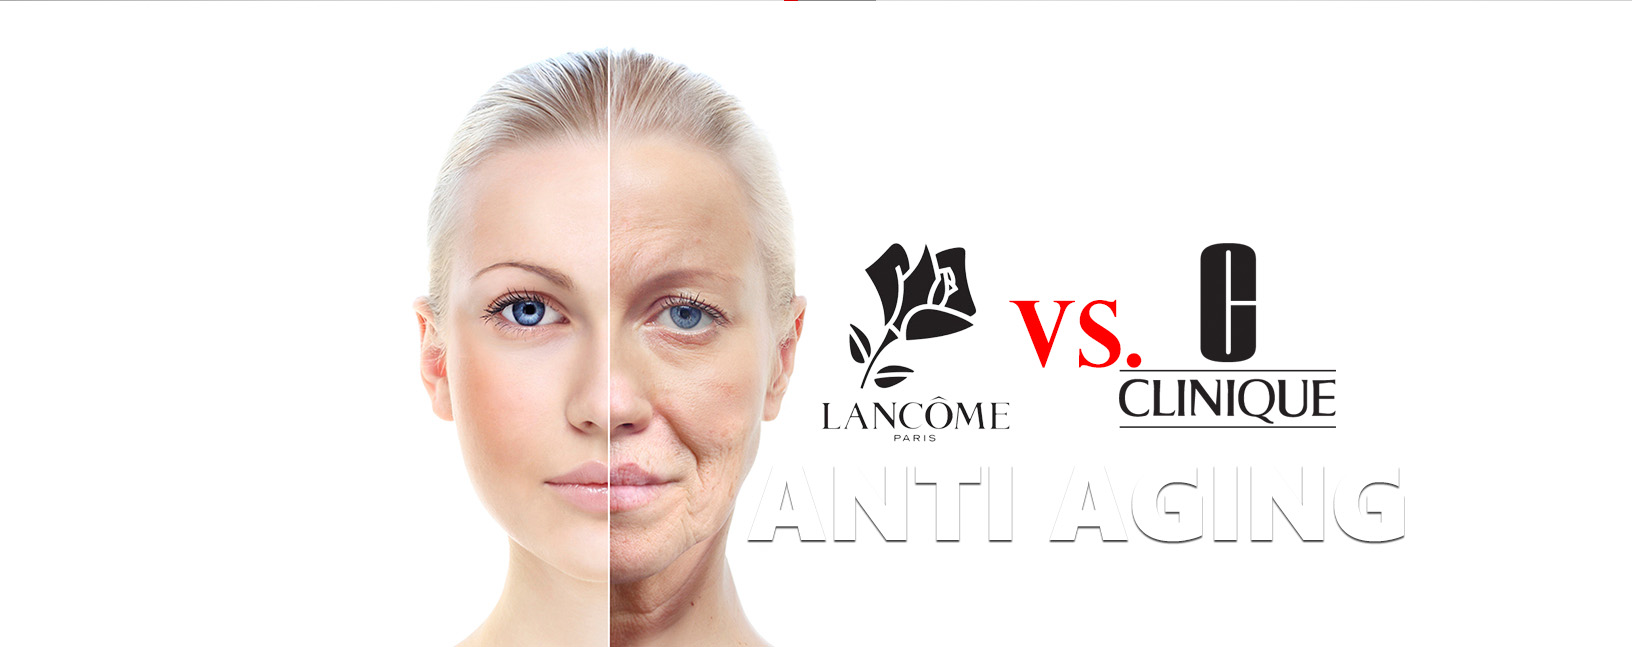 Lancome vs clinique Anti Aging